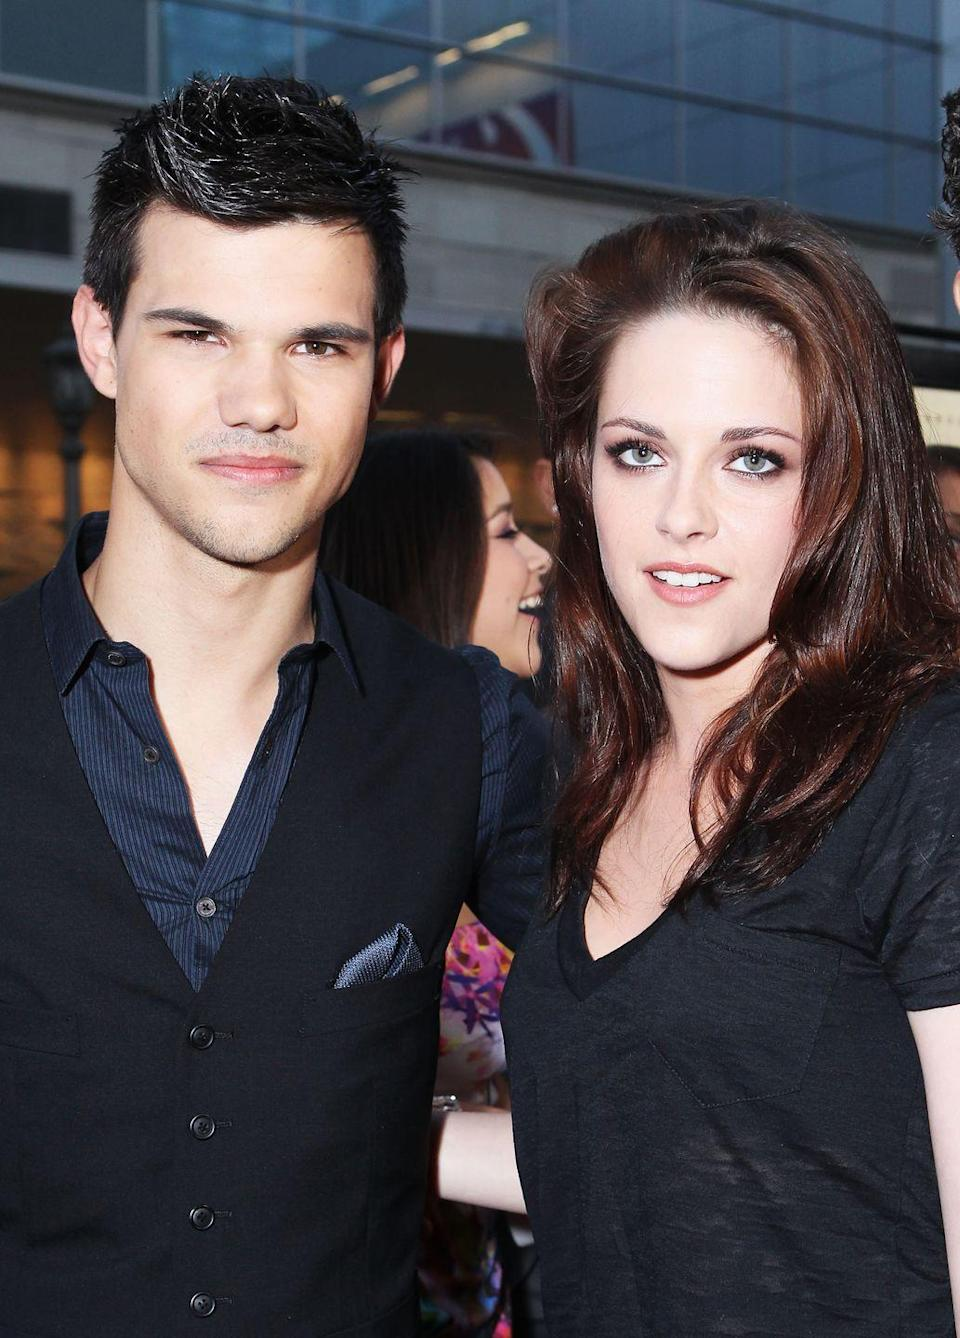 "<p>Shockingly enough, Kristen Stewart found it hard to kiss Taylor Lautner while filming <em>Eclipse,</em> the third movie in the <em>Twilight </em>saga.</p><p>""One of the most challenging scenes was probably finally kissing Jacob for the first time,"" Kristen admitted to <a href=""https://parade.com/28190/jeannewolf/0616-kirsten-stewart-eclipse/"" rel=""nofollow noopener"" target=""_blank"" data-ylk=""slk:Parade"" class=""link rapid-noclick-resp""><em>Parade</em></a>. ""Bella has got such tunnel vision that Edward is the only thing for her. That's a strange perspective. So when Taylor Lautner and I kissed, it felt like such a different dynamic. I was nervous as hell.""</p>"